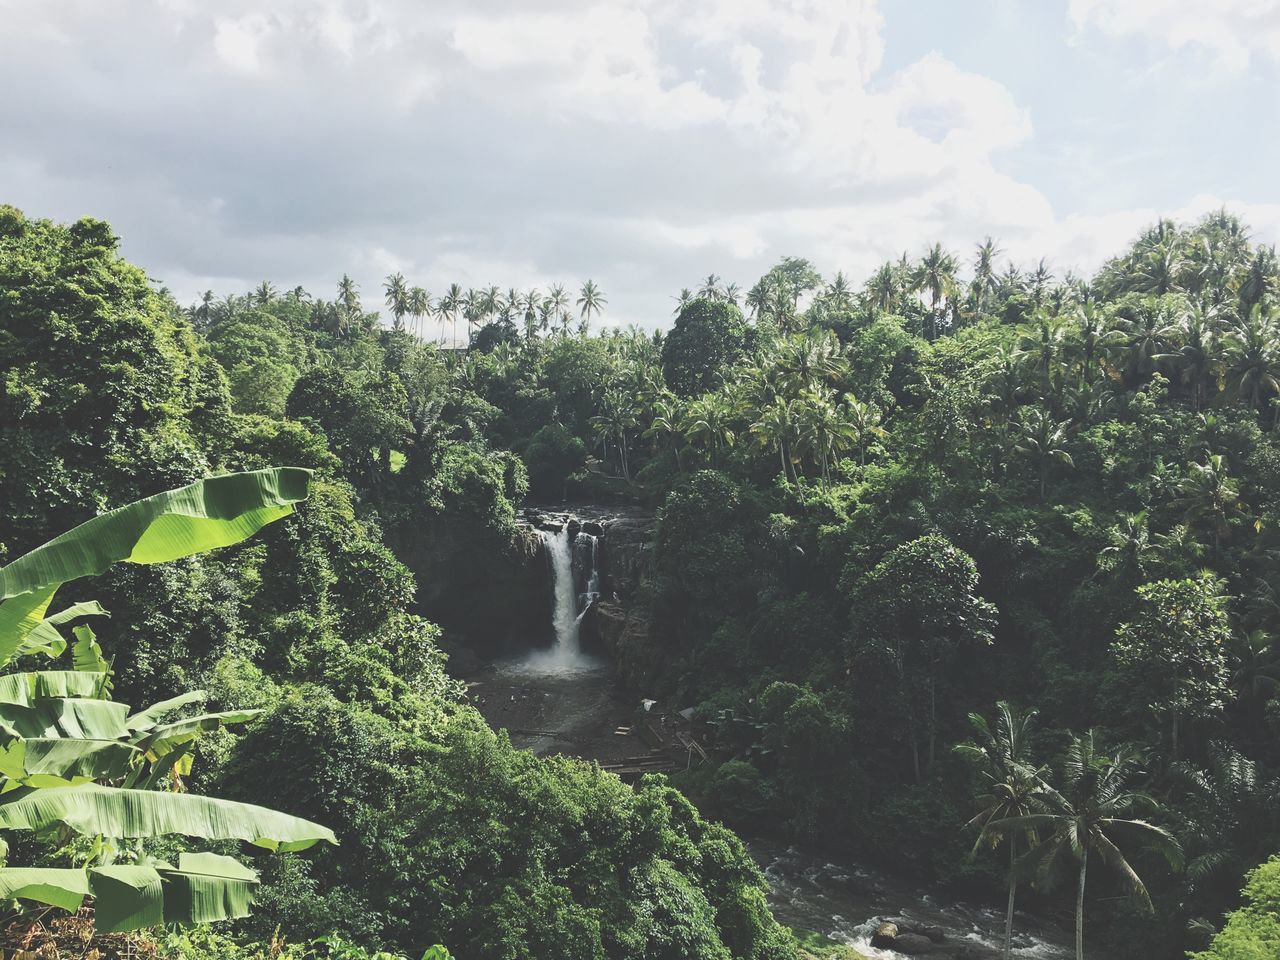 Bali Ubud Tegenungan Waterfall View Breathtaking Scenic Picturesque Paradise Picoftheday Green Water Swimming